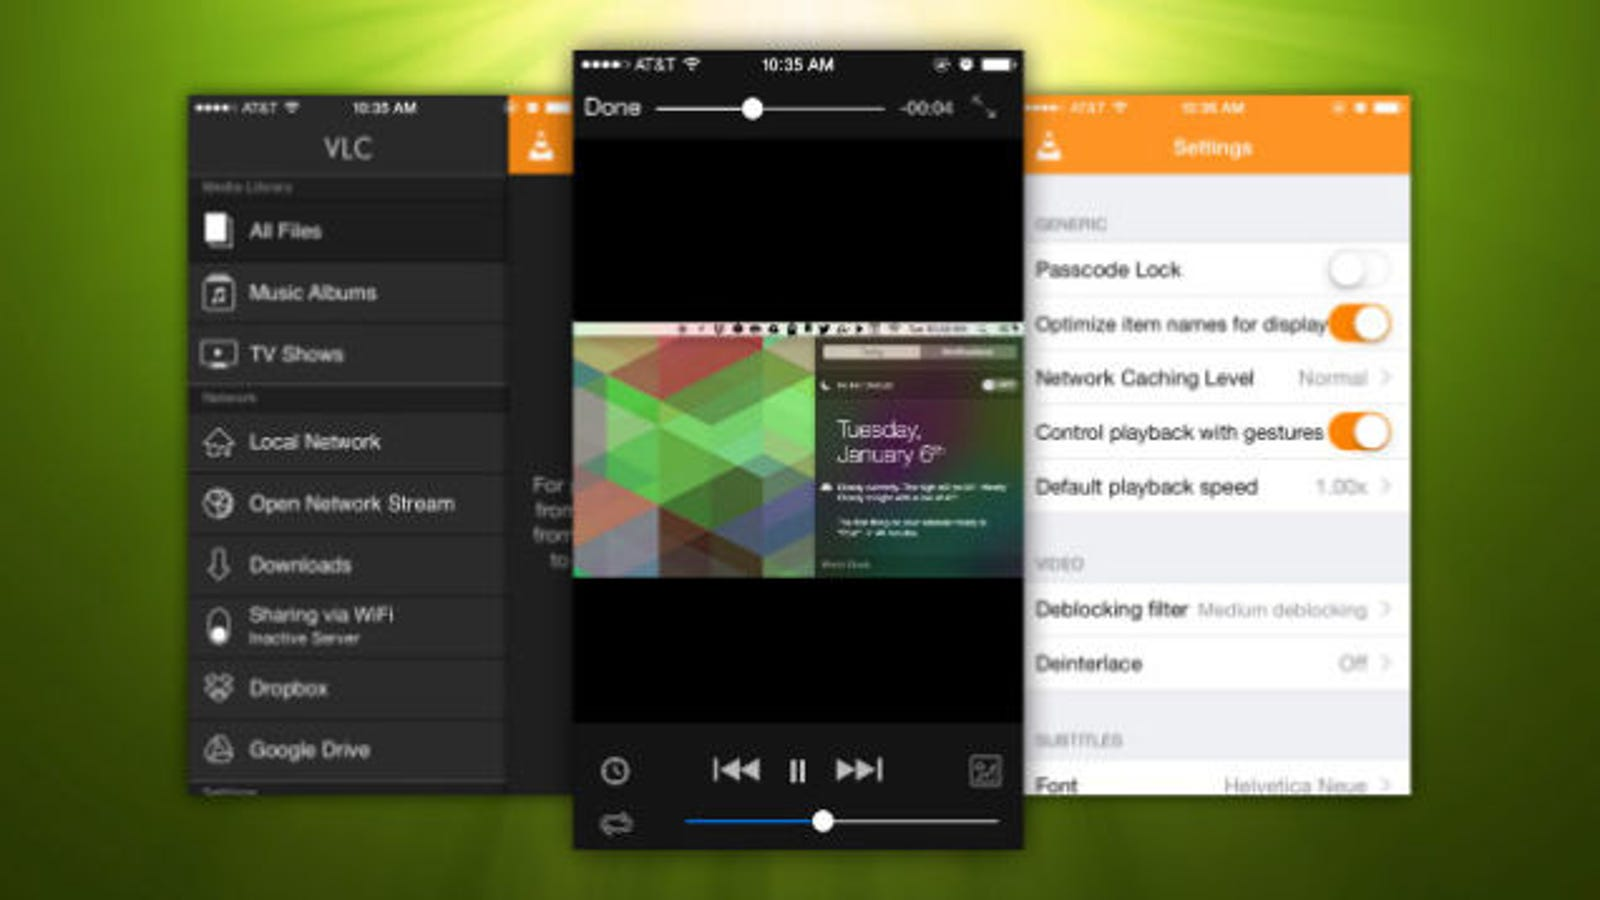 vlc gets extensions resume playback and comes back to ios